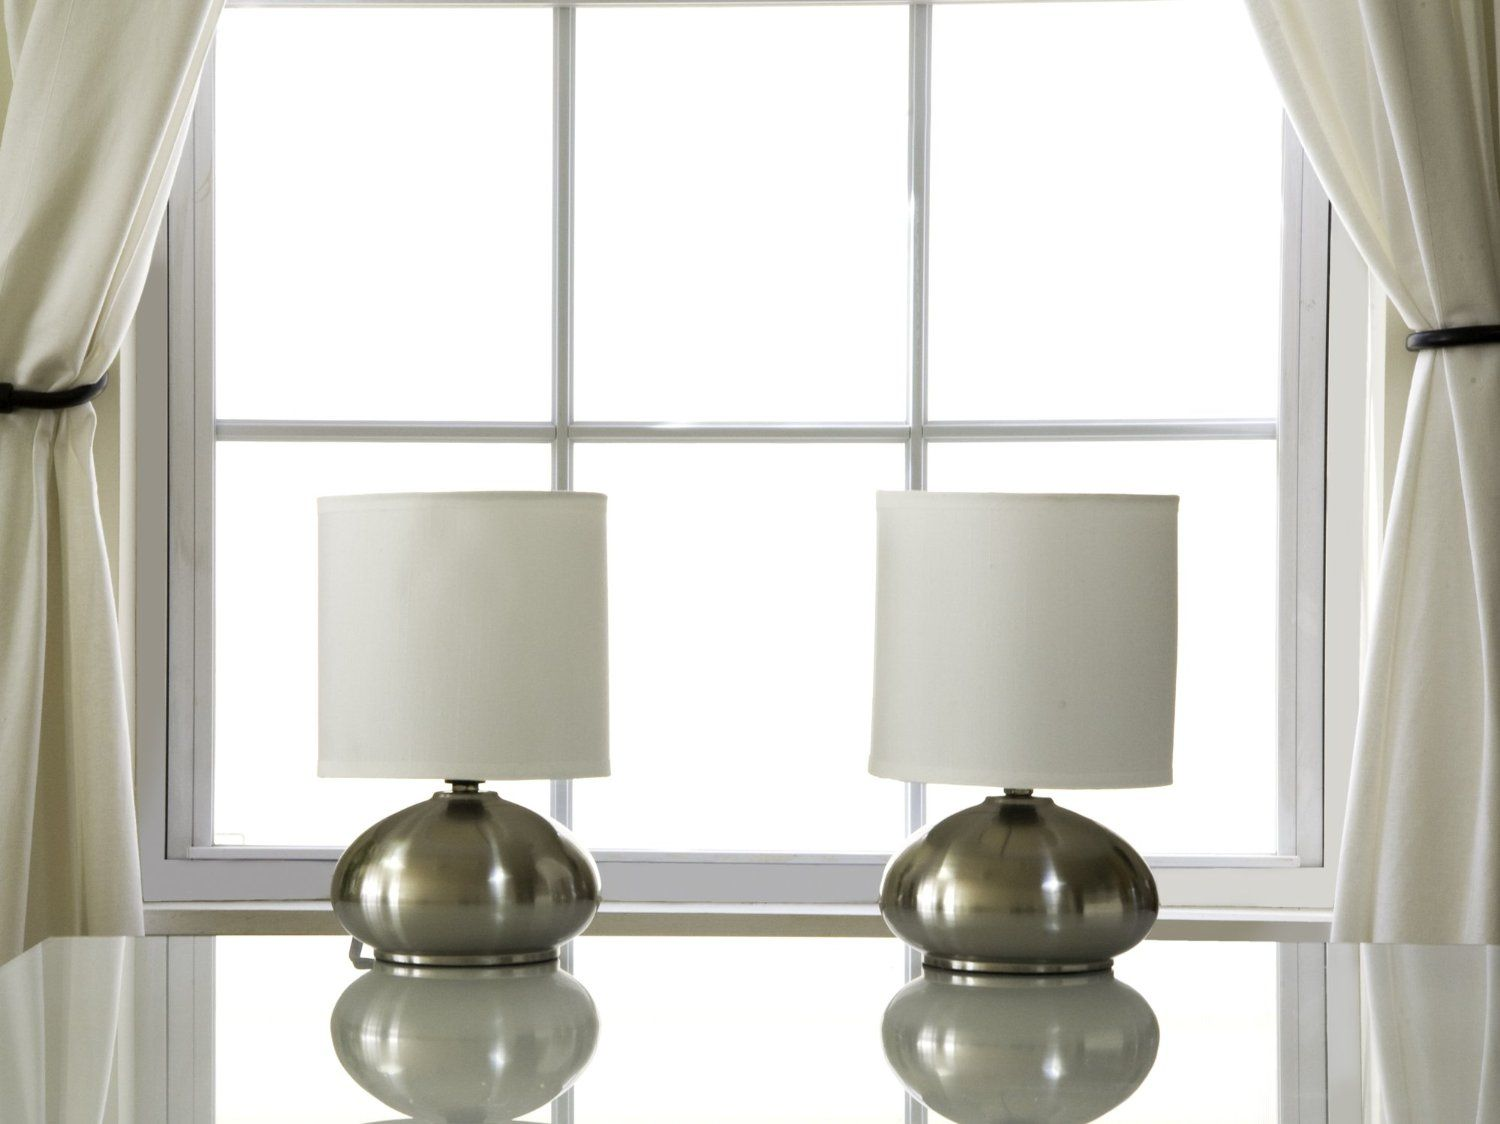 Light Accents Bedroom Side Table Lamps With On Off Touch Sensor Brushed Nickel Set Of 2 Table Lamps For Bedroom Side Table Lamps Bedroom Side Table Lamps